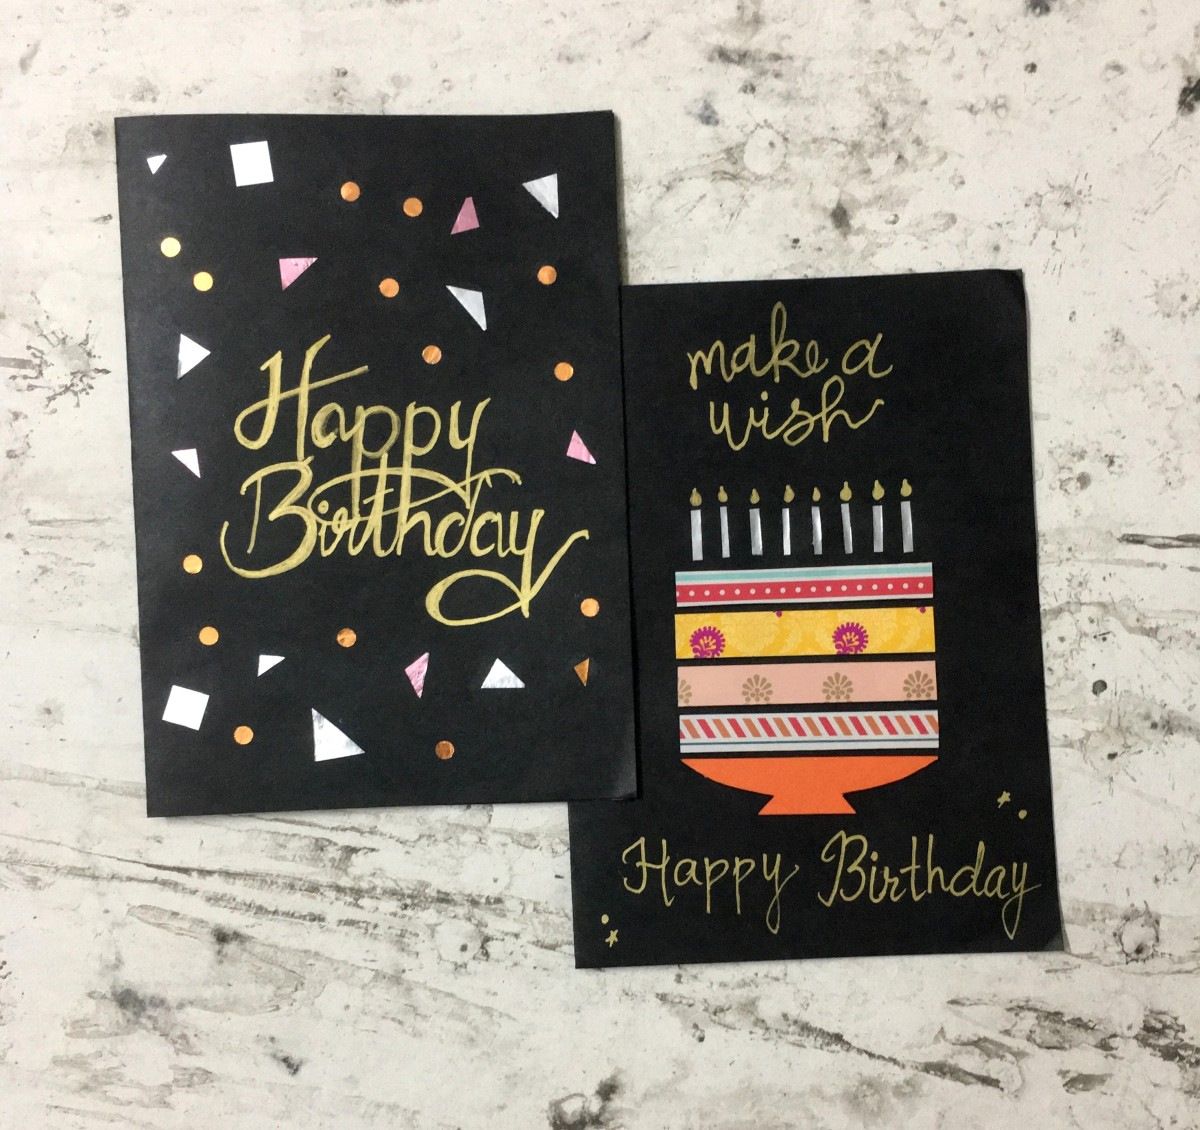 10-Minute, Easy DIY Birthday Greeting Cards